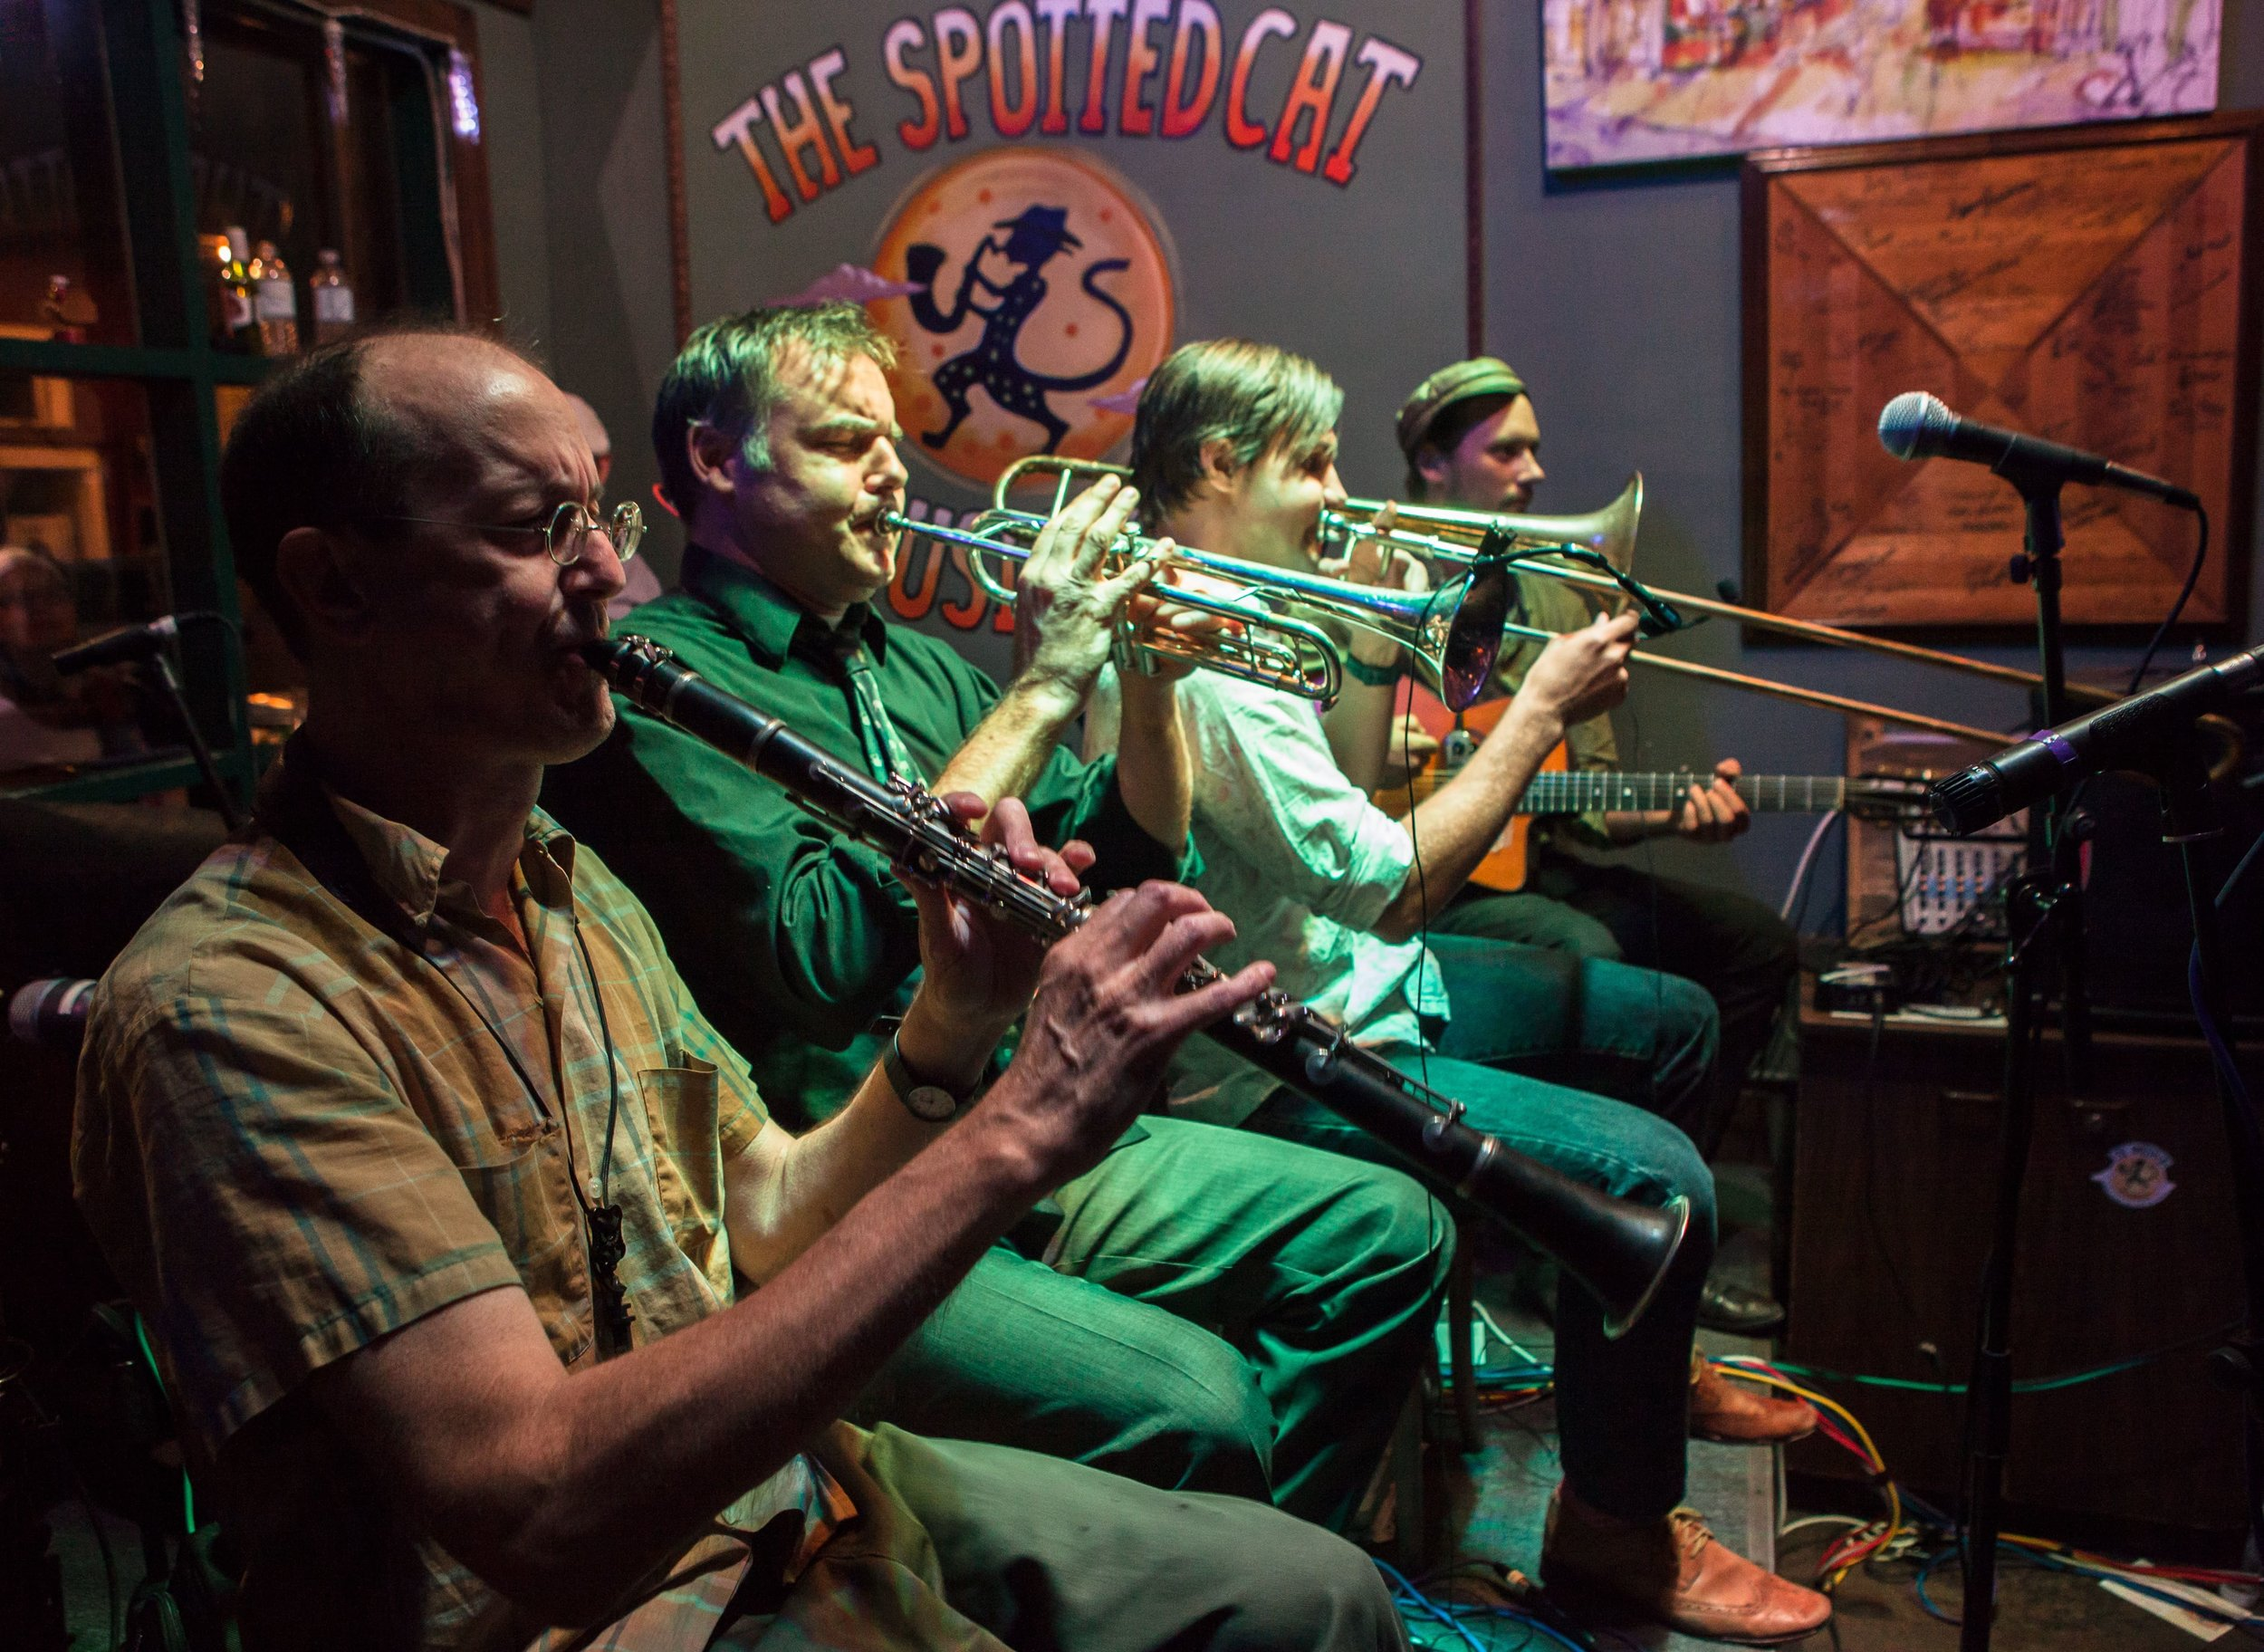 Jumbo_Shrimp_Jazz_Band_Magnolia_Entertainment_New_Orleans_NOLA_Music_Booking_Talent_Agency_Trio_Quartet_Quintet_band_trombone_trumpet_saxophone_sax_guitar_bass_dixieland_traditional_spotted_cat_club